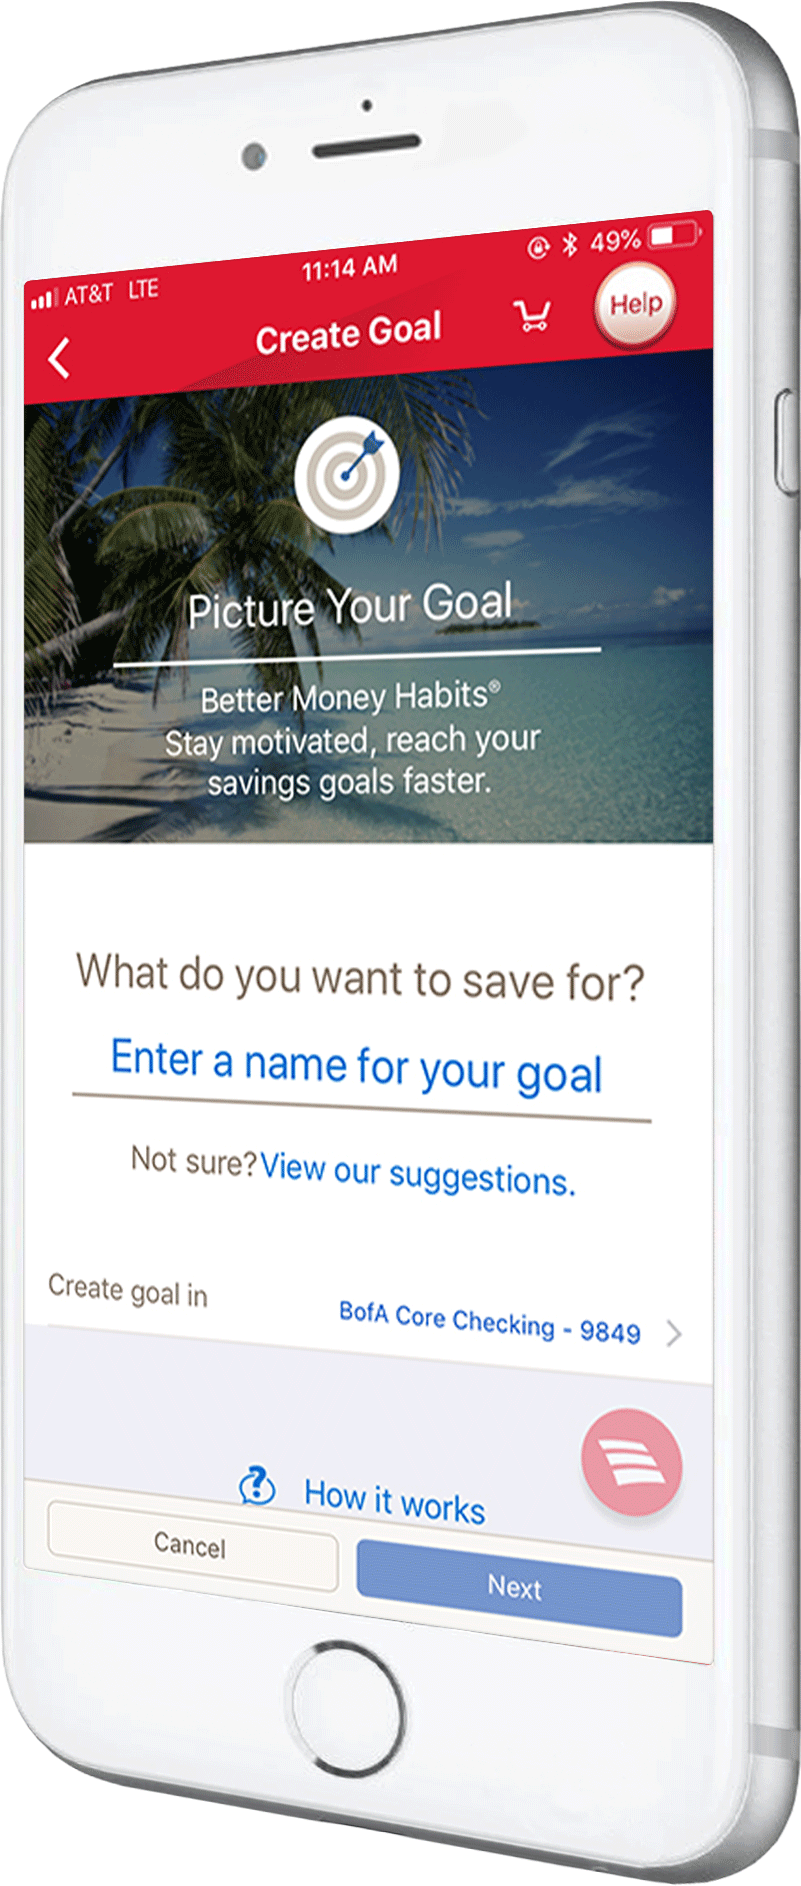 Image of a phone displaying the Goals tool.